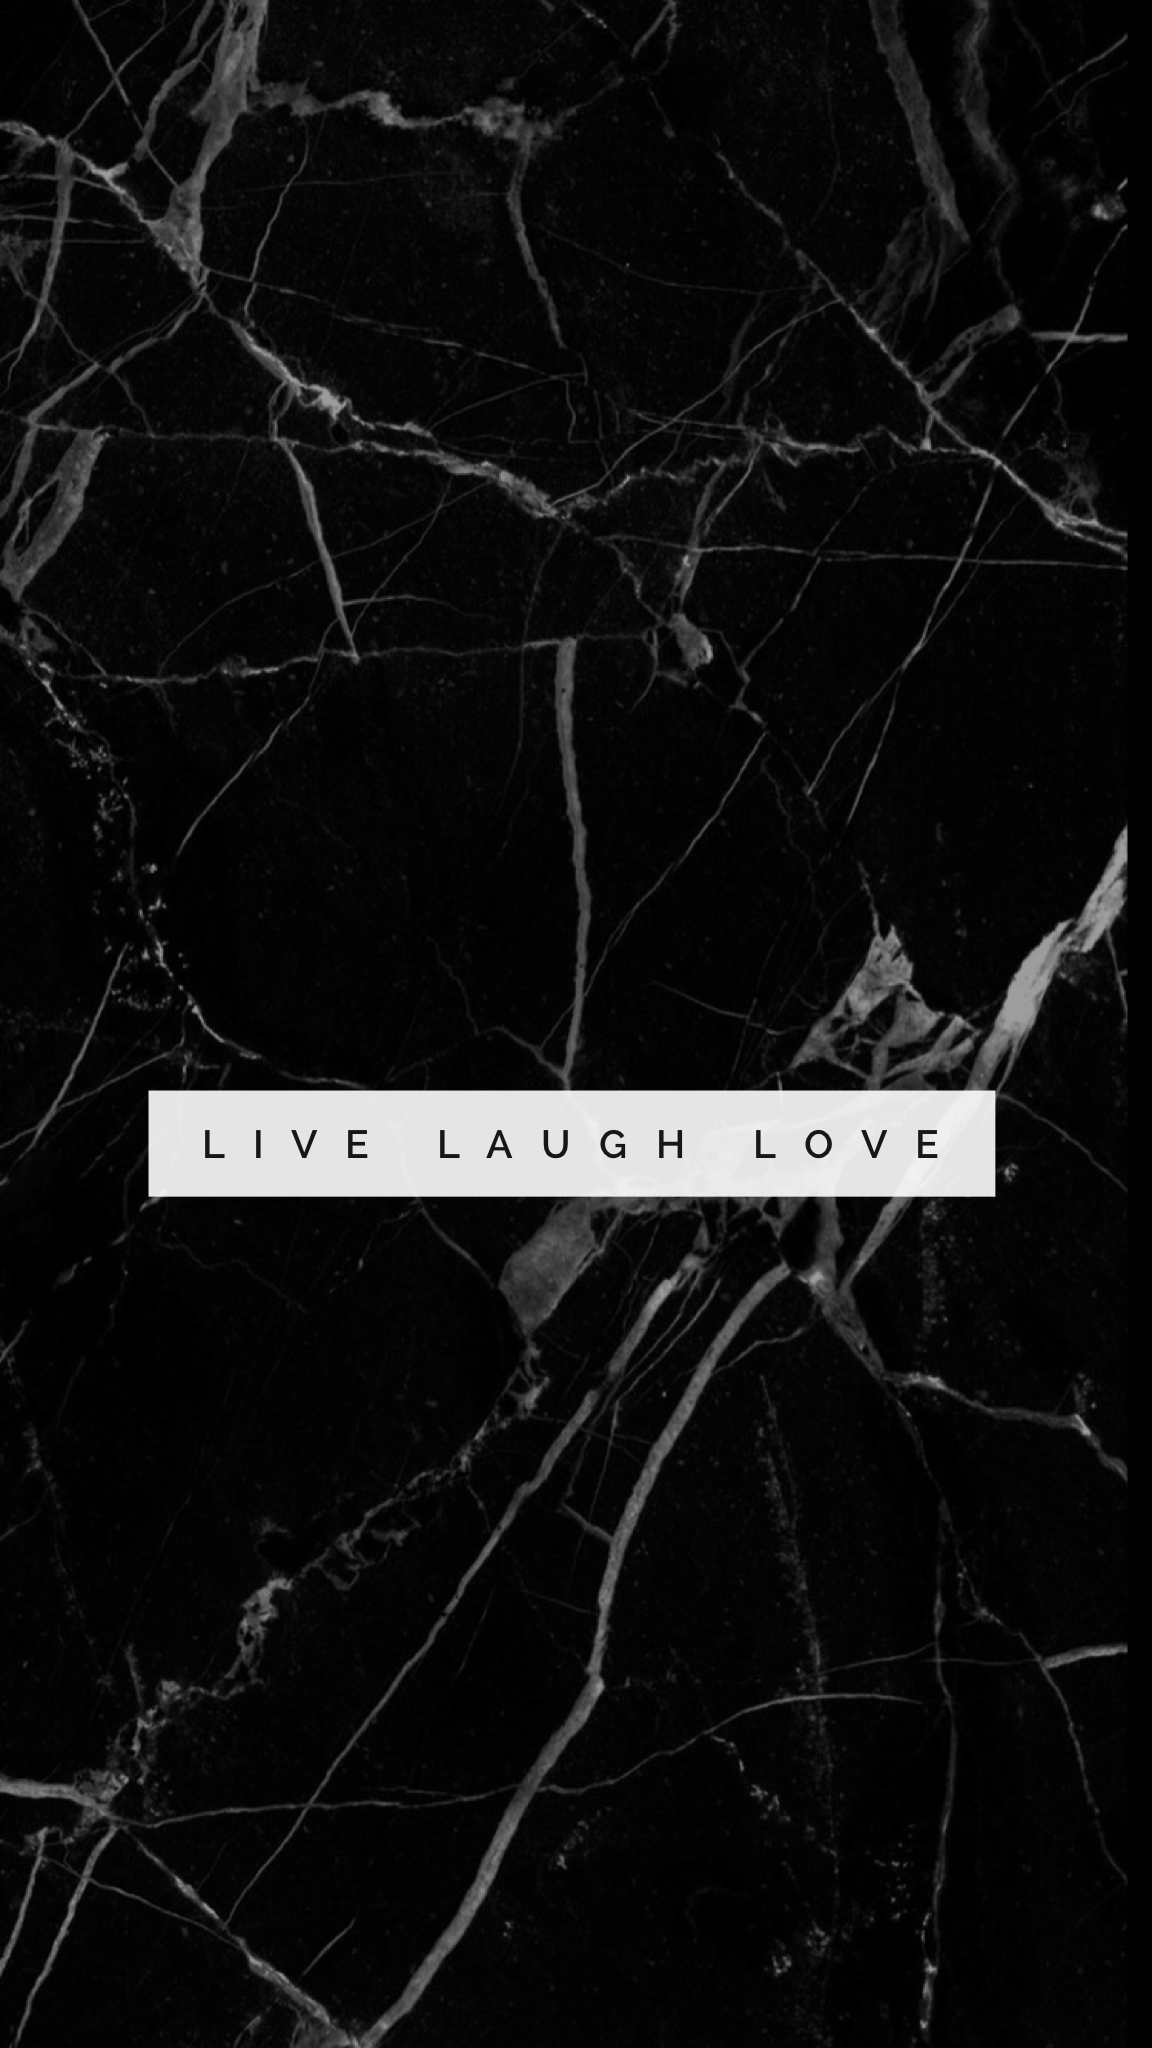 Wallpaper Wall Background Iphone Android Minimal Simple Quote Hd Black White M In 2020 Marble Wallpaper Phone Black Wallpaper Iphone Marble Iphone Wallpaper